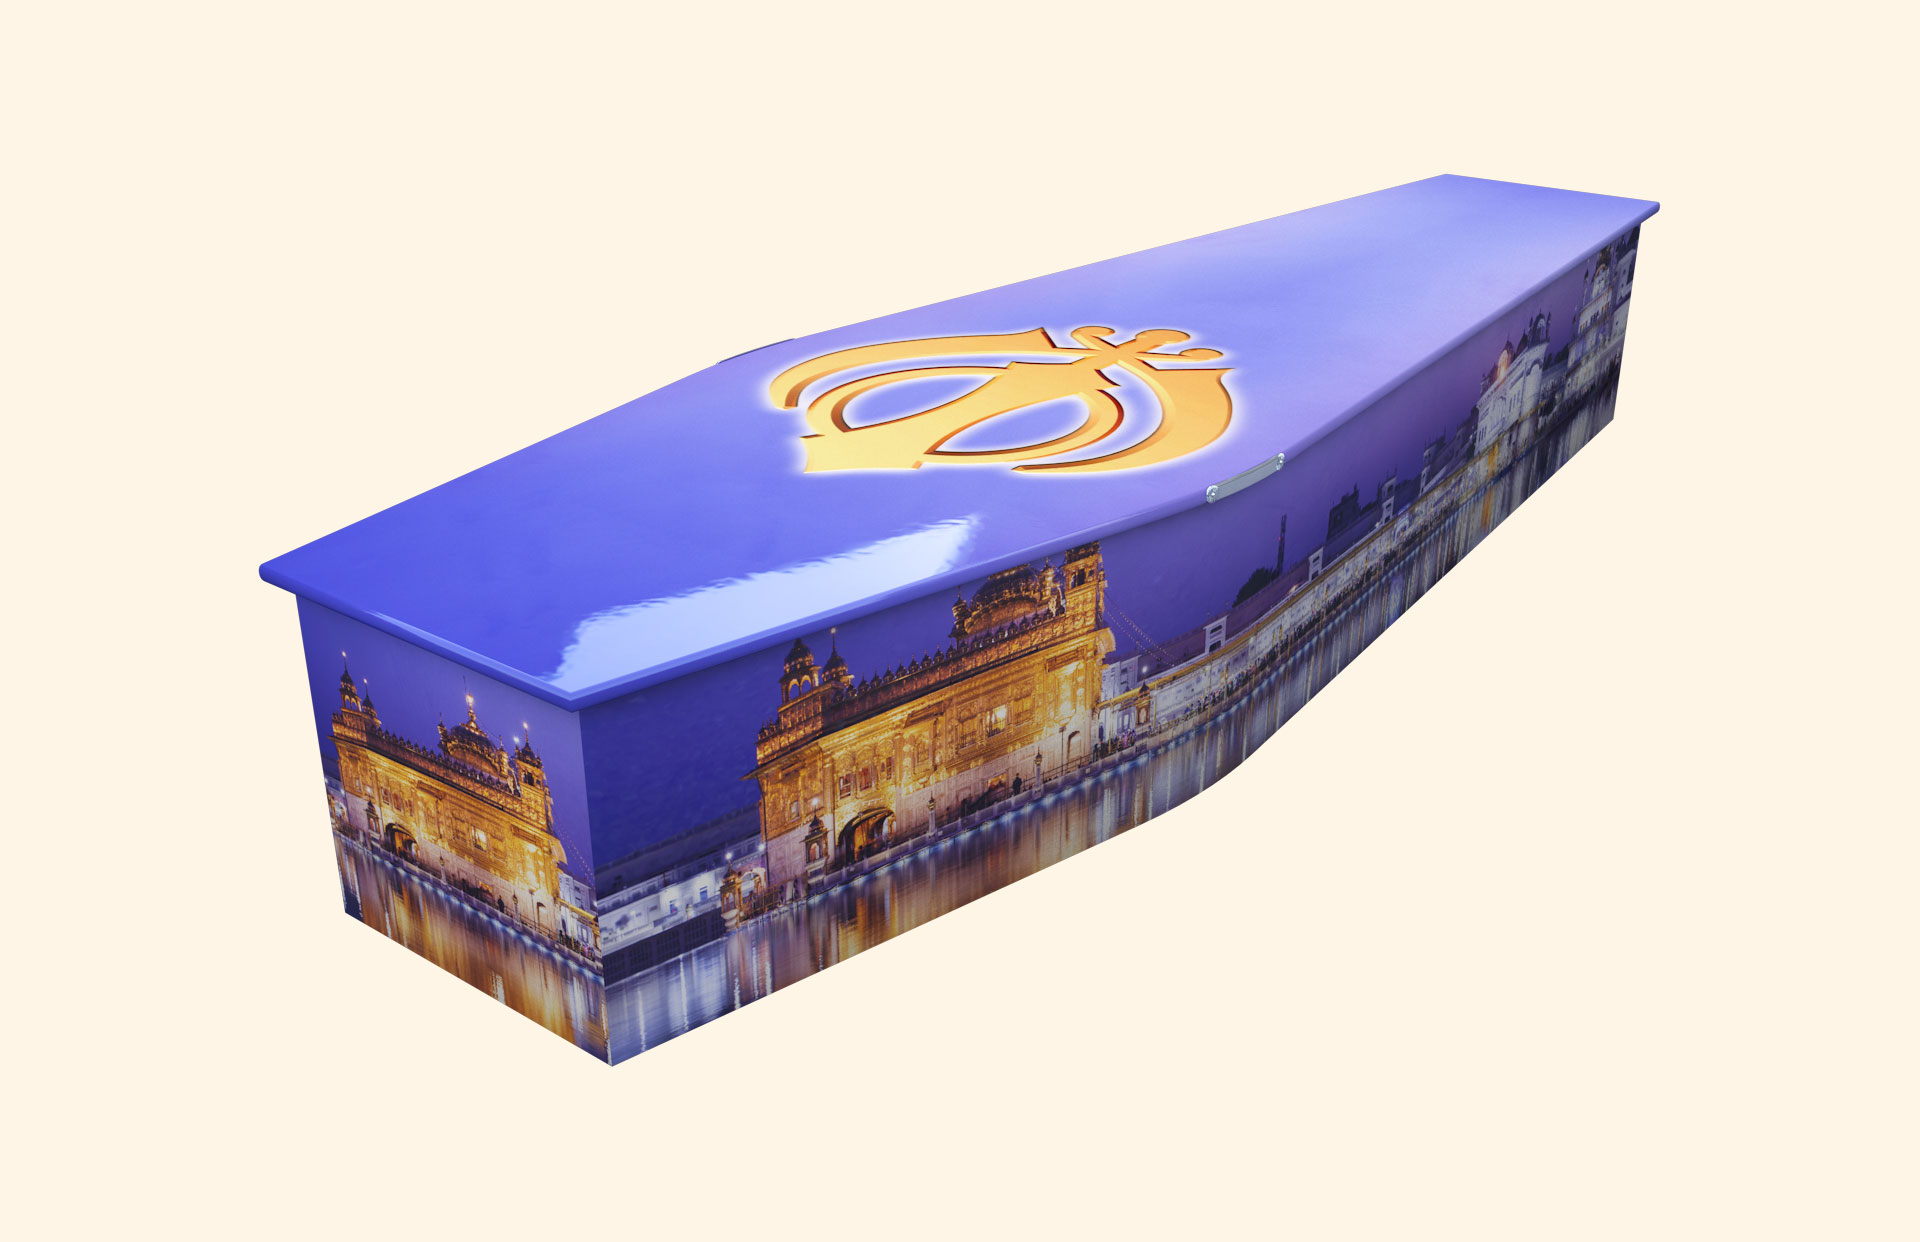 Sikh Traditional coffin